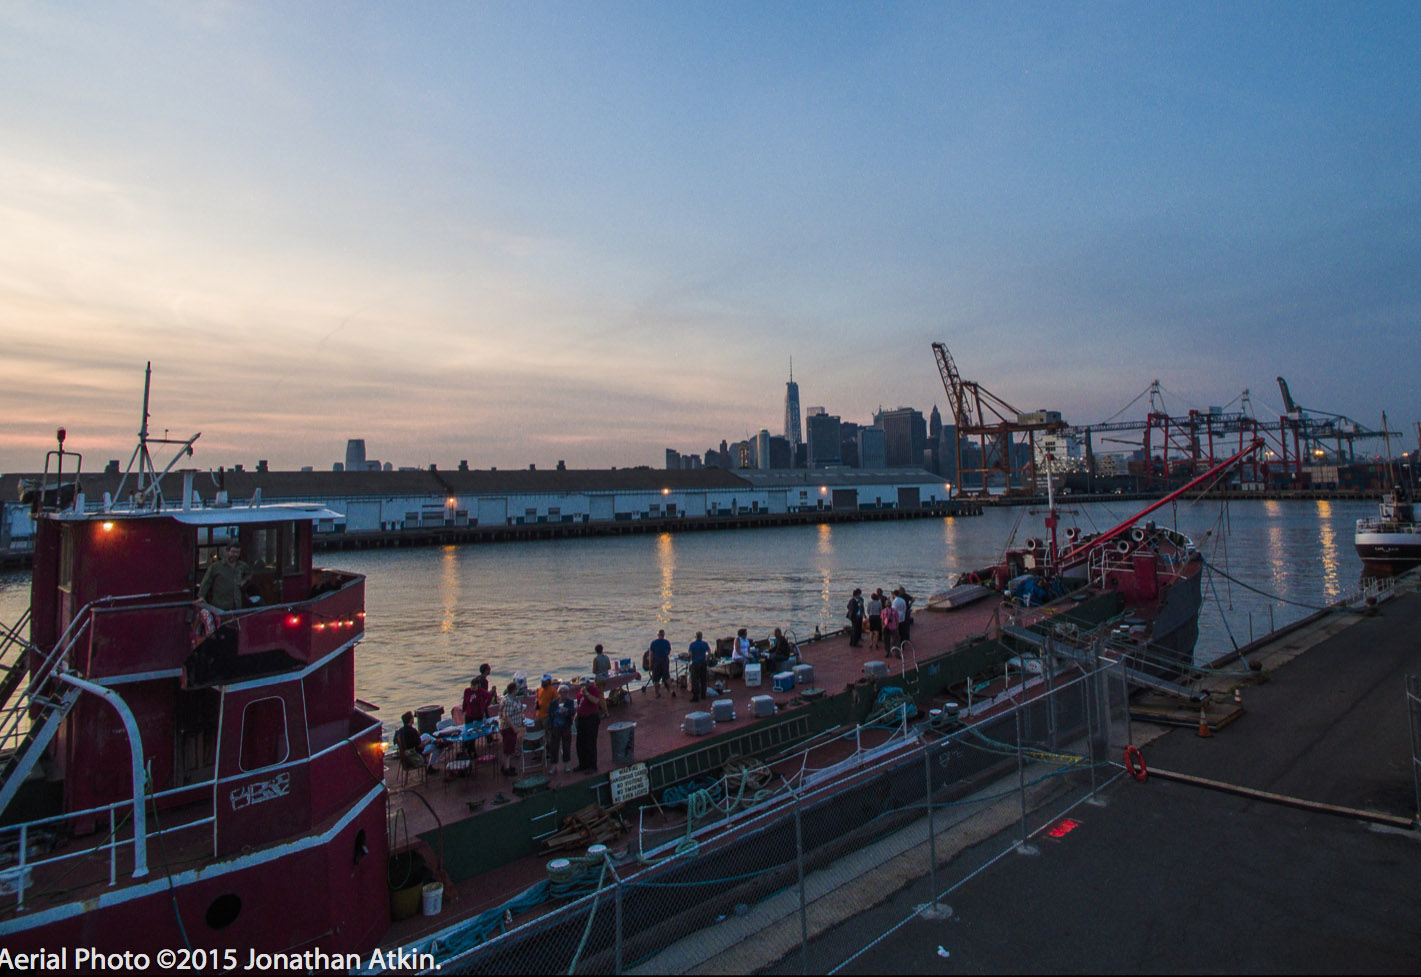 great views from our ship mary a. whalen